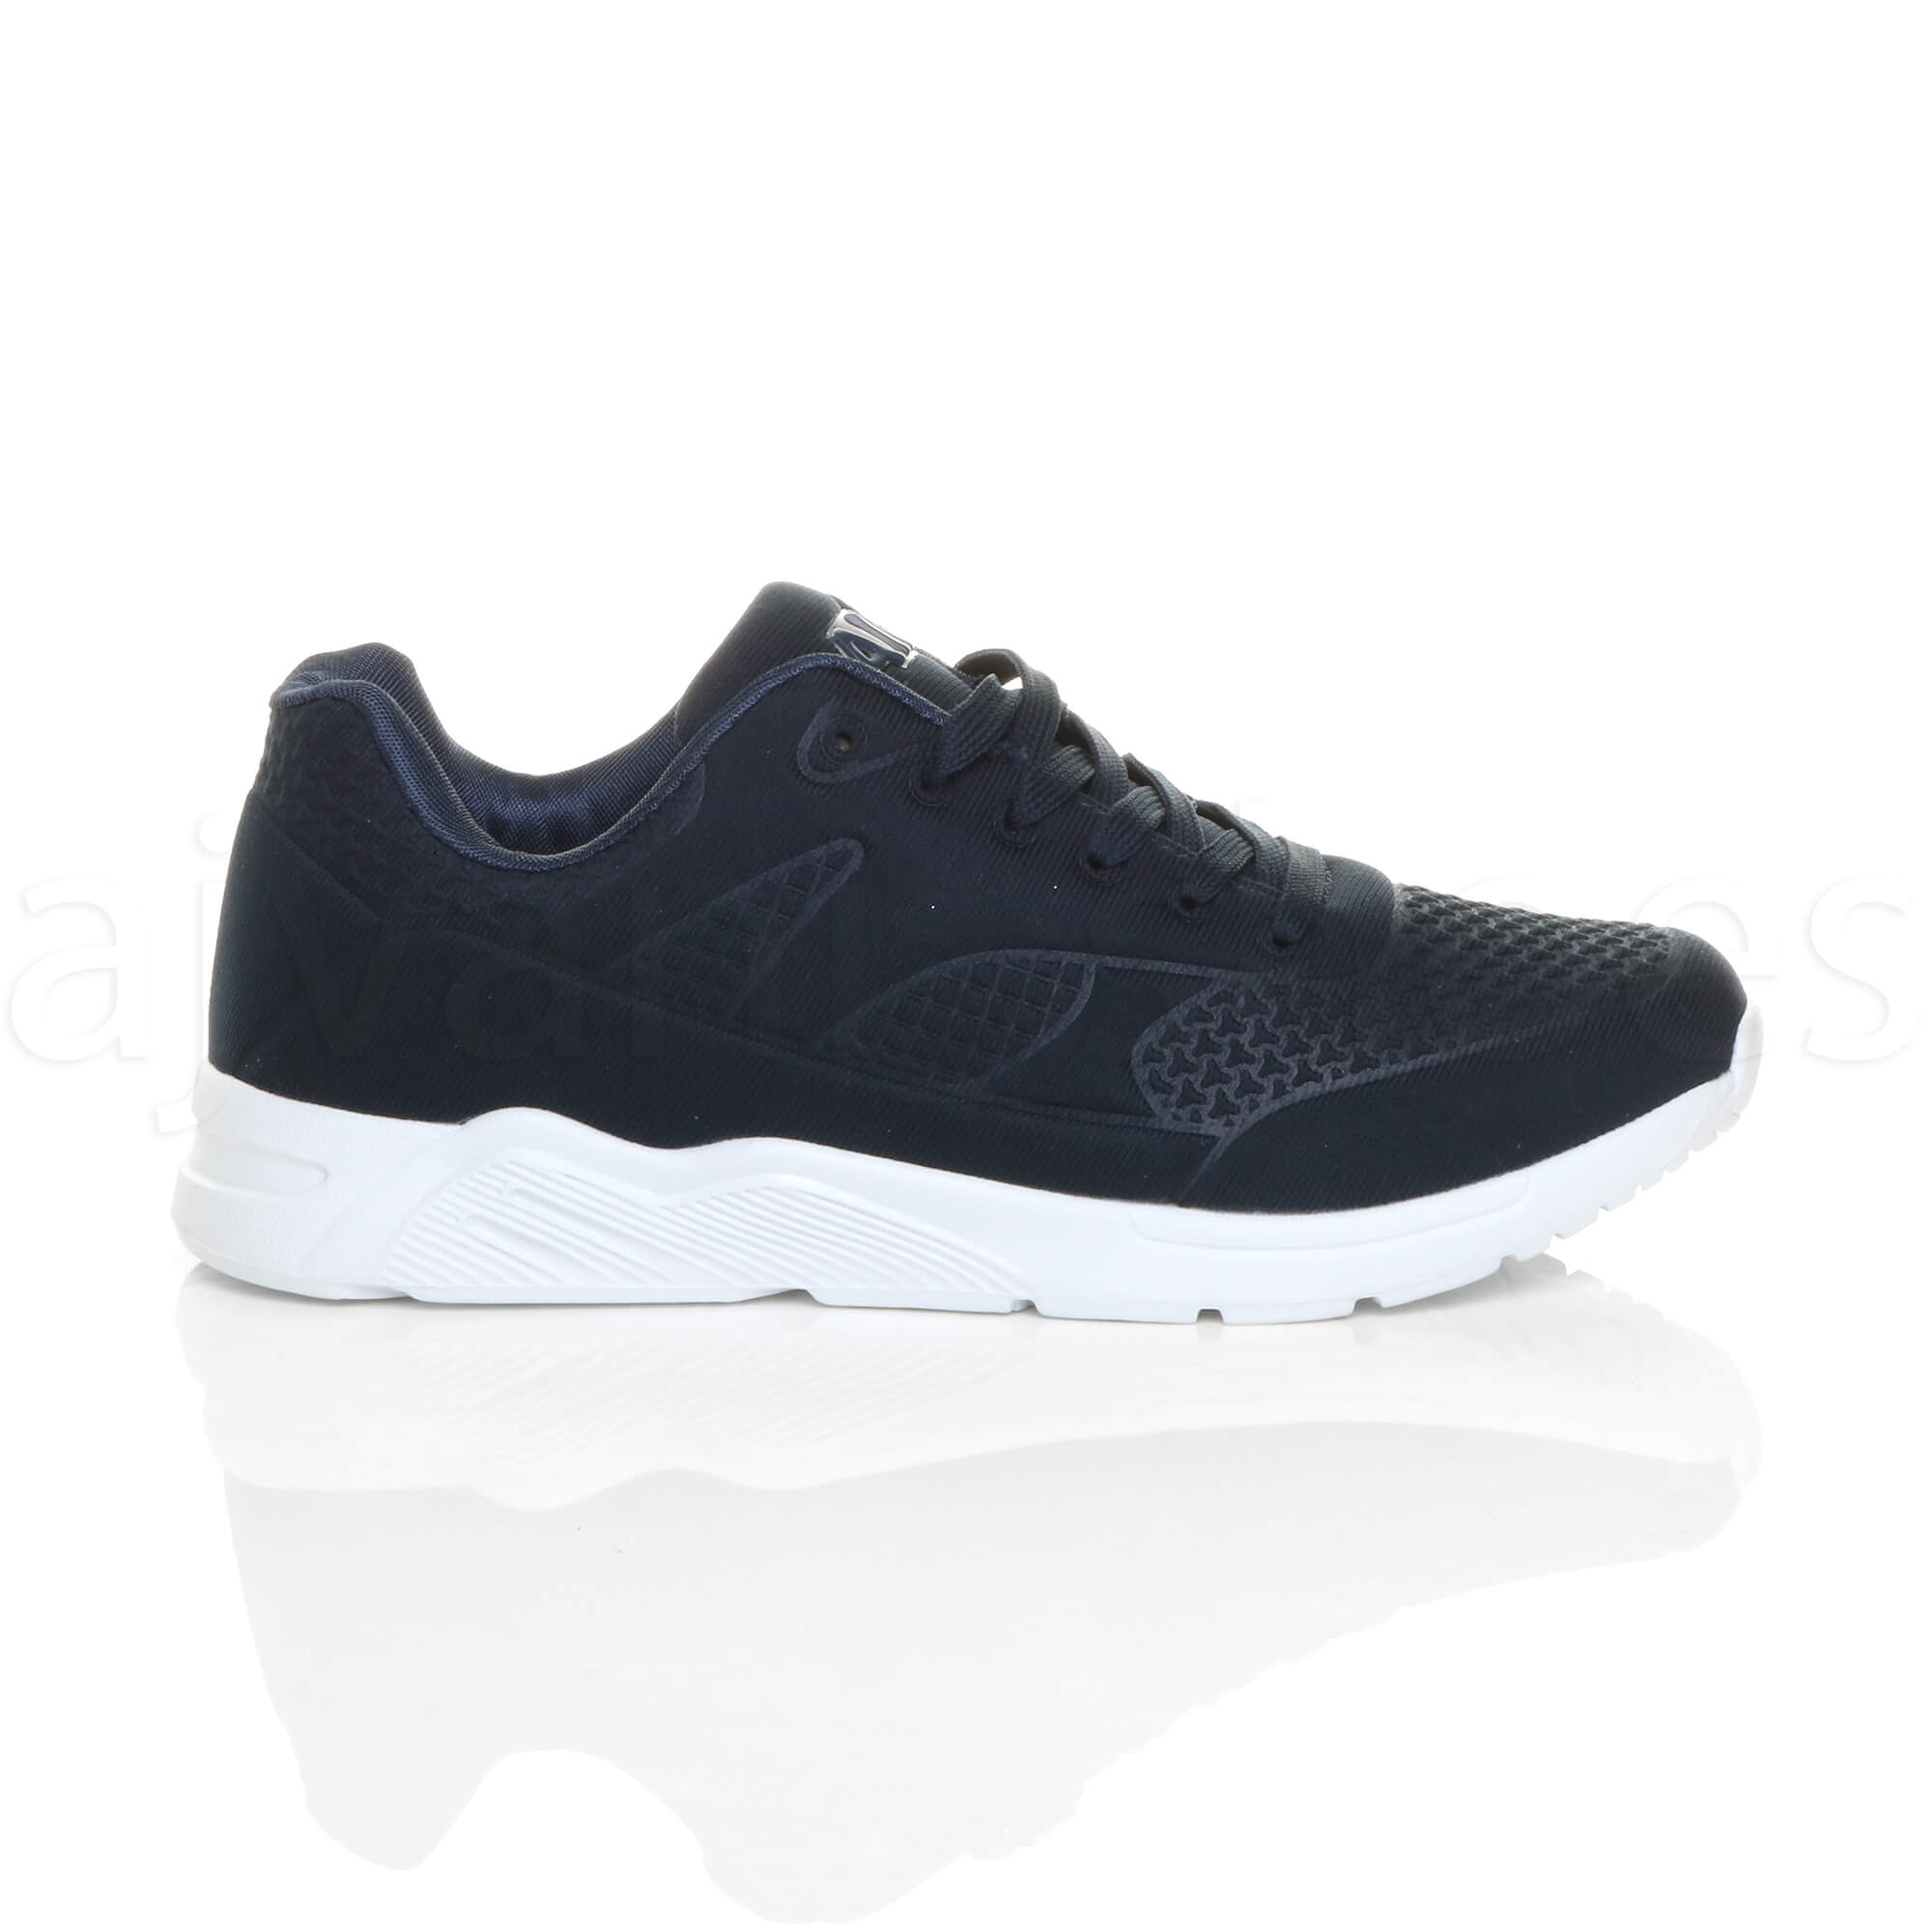 MENS-LACE-UP-FLEXIBLE-SOLE-RUNNING-SPORT-GYM-FITNESS-TRAINERS-SNEAKERS-SIZE miniatuur 11